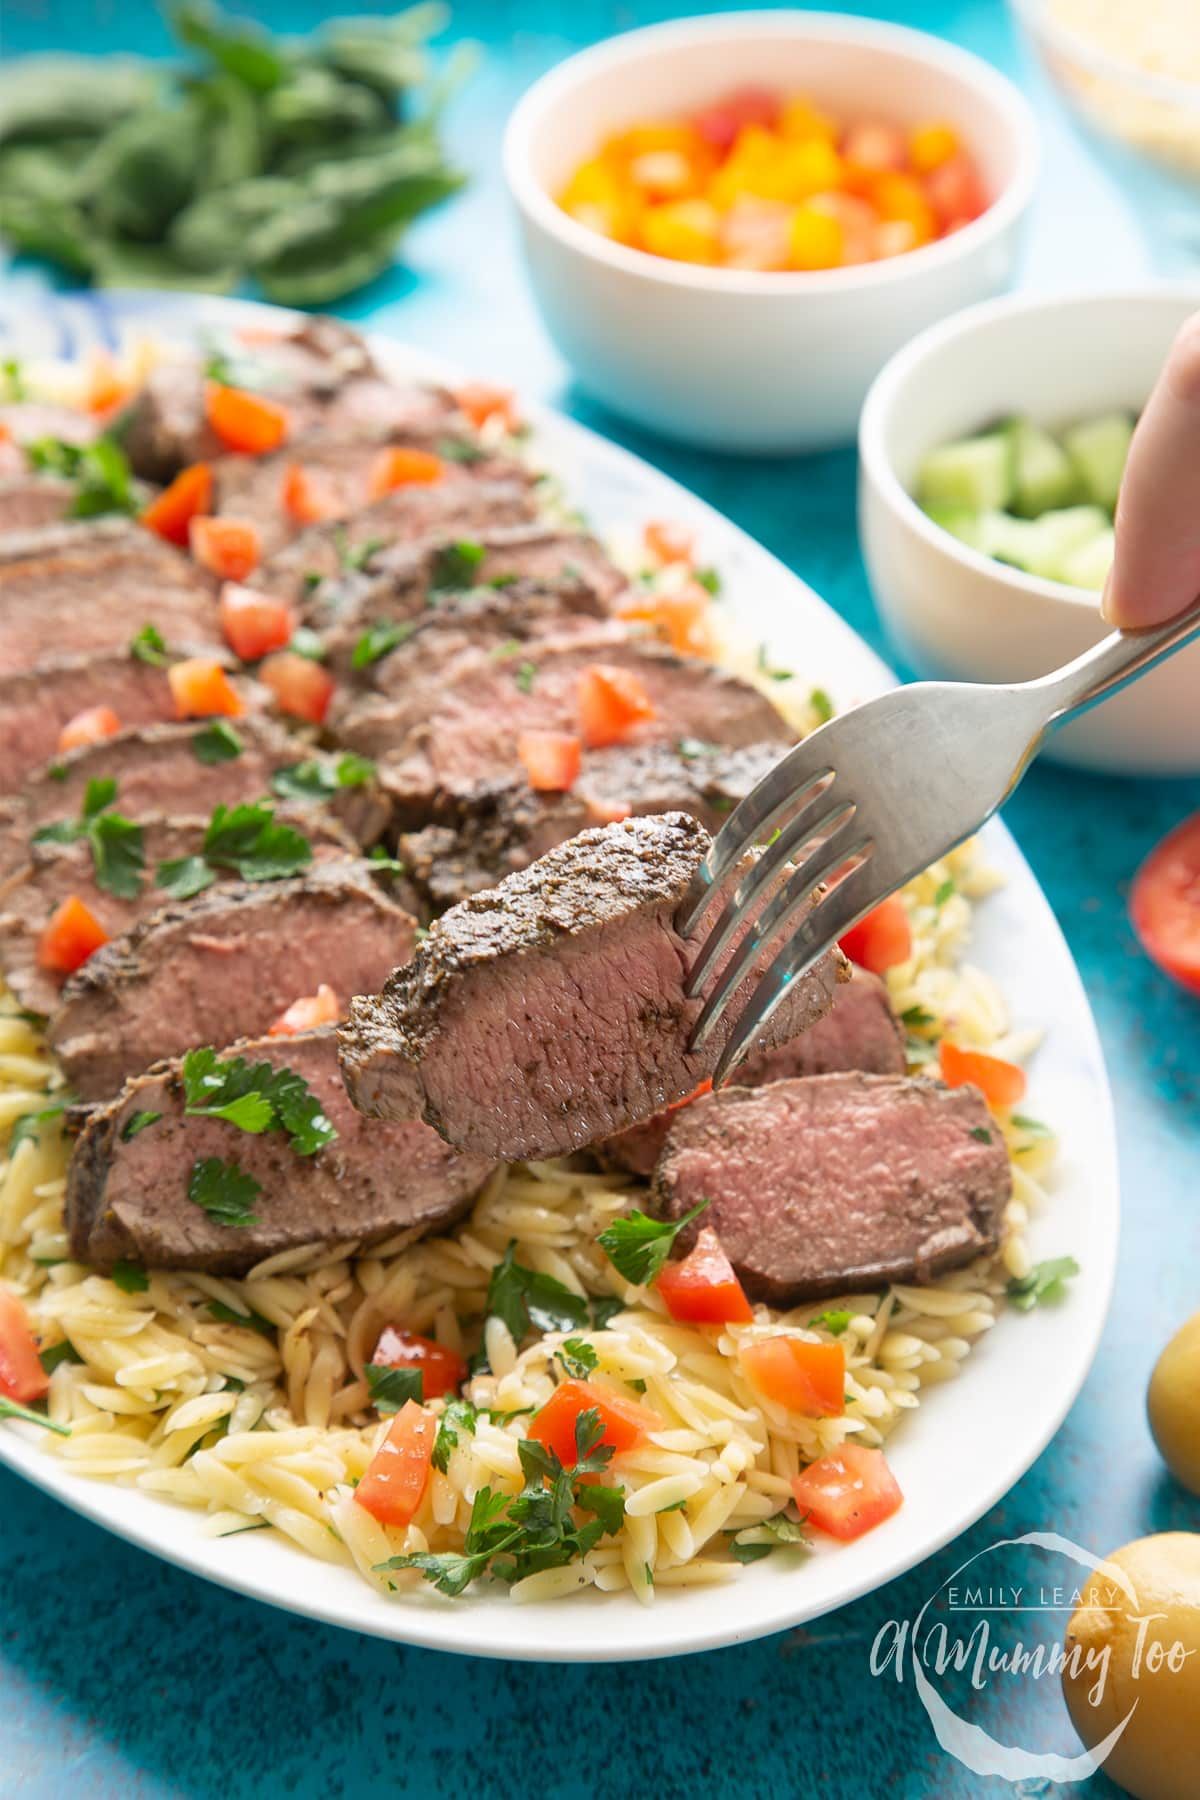 Slices of herby lamb arranged on a bed of orzo on an oval platter. The dish has been scattered with parsley and chopped tomatoes. A fork lifts a piece of lamb.